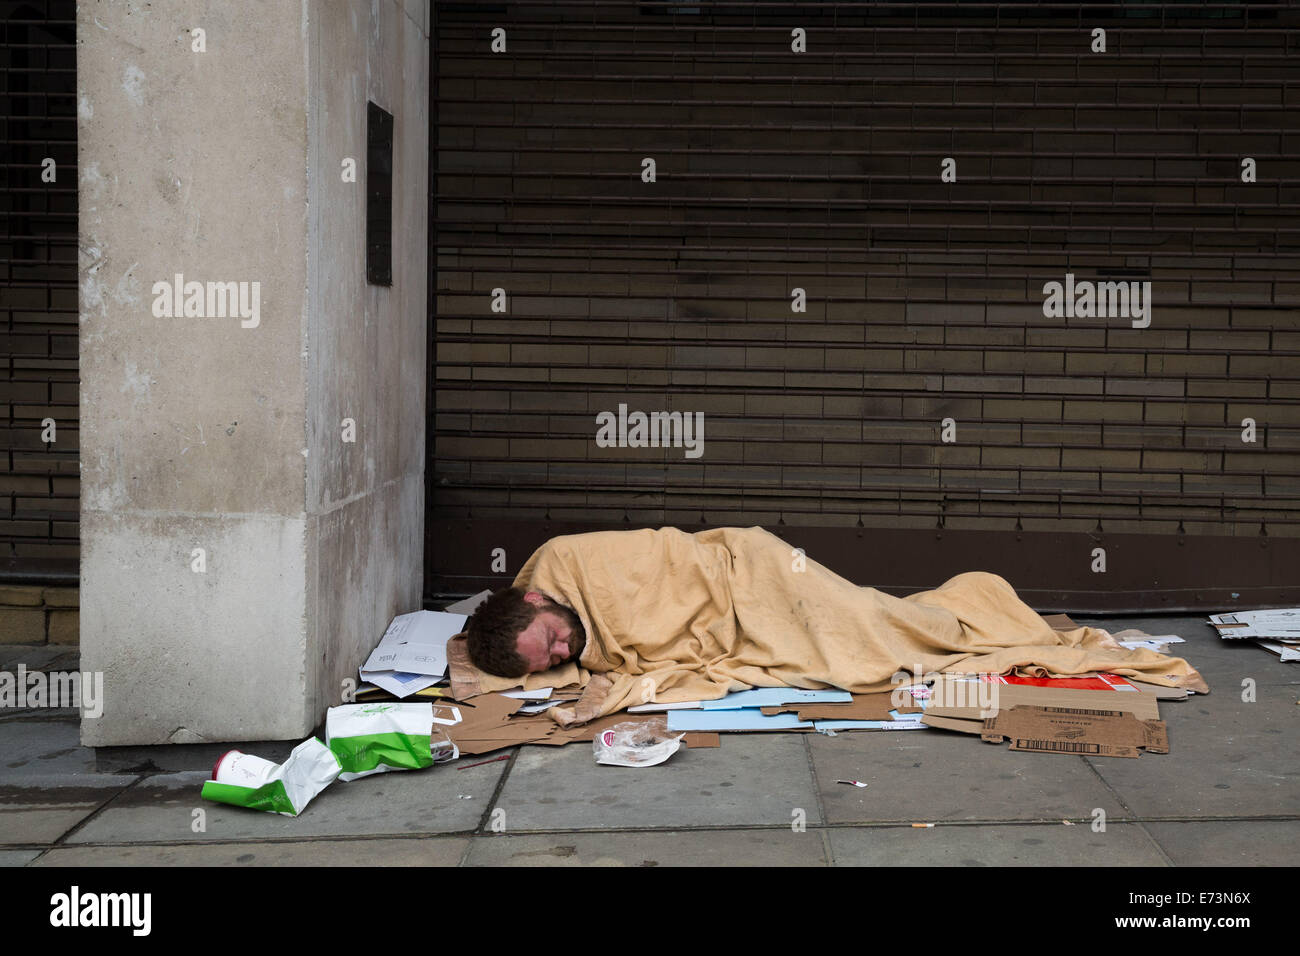 London, UK. 5th Sept, 2014.  Homeless and rough sleepers near The Strand © Guy Corbishley/Alamy Live News - Stock Image